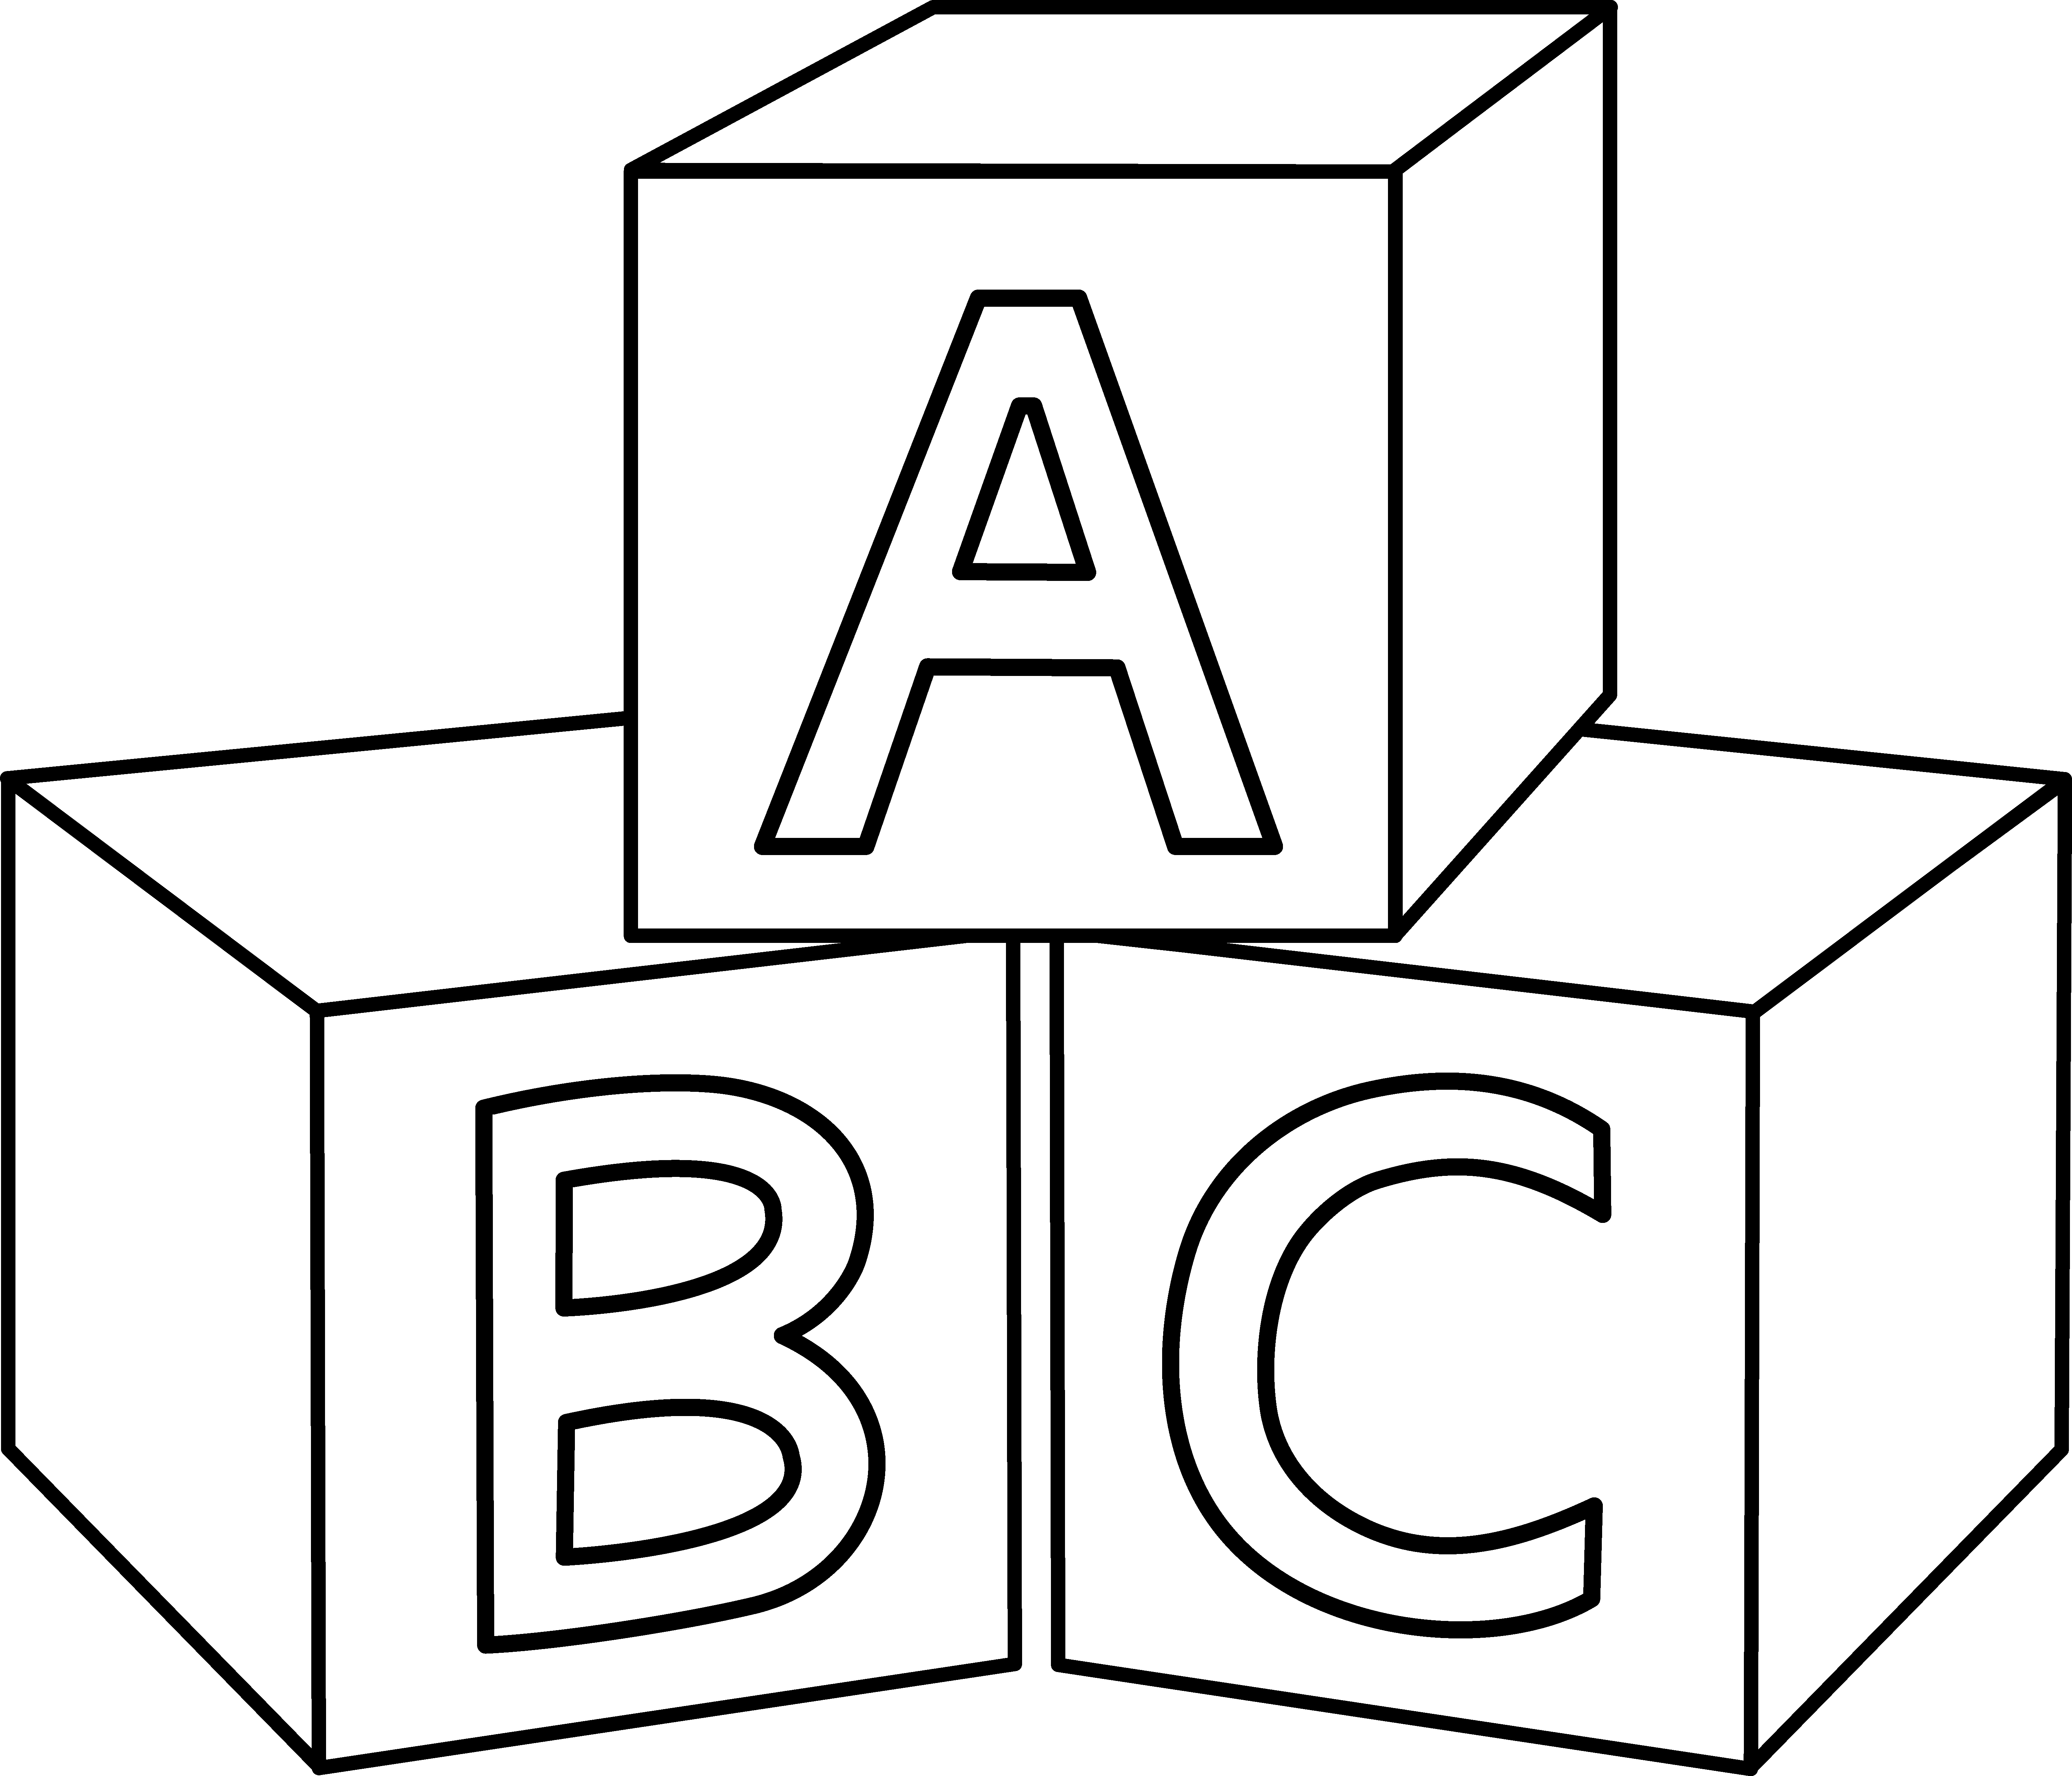 My abc book clipart banner freeuse ABC Blocks Design | mirror image transfer | Pinterest | Cricut and ... banner freeuse